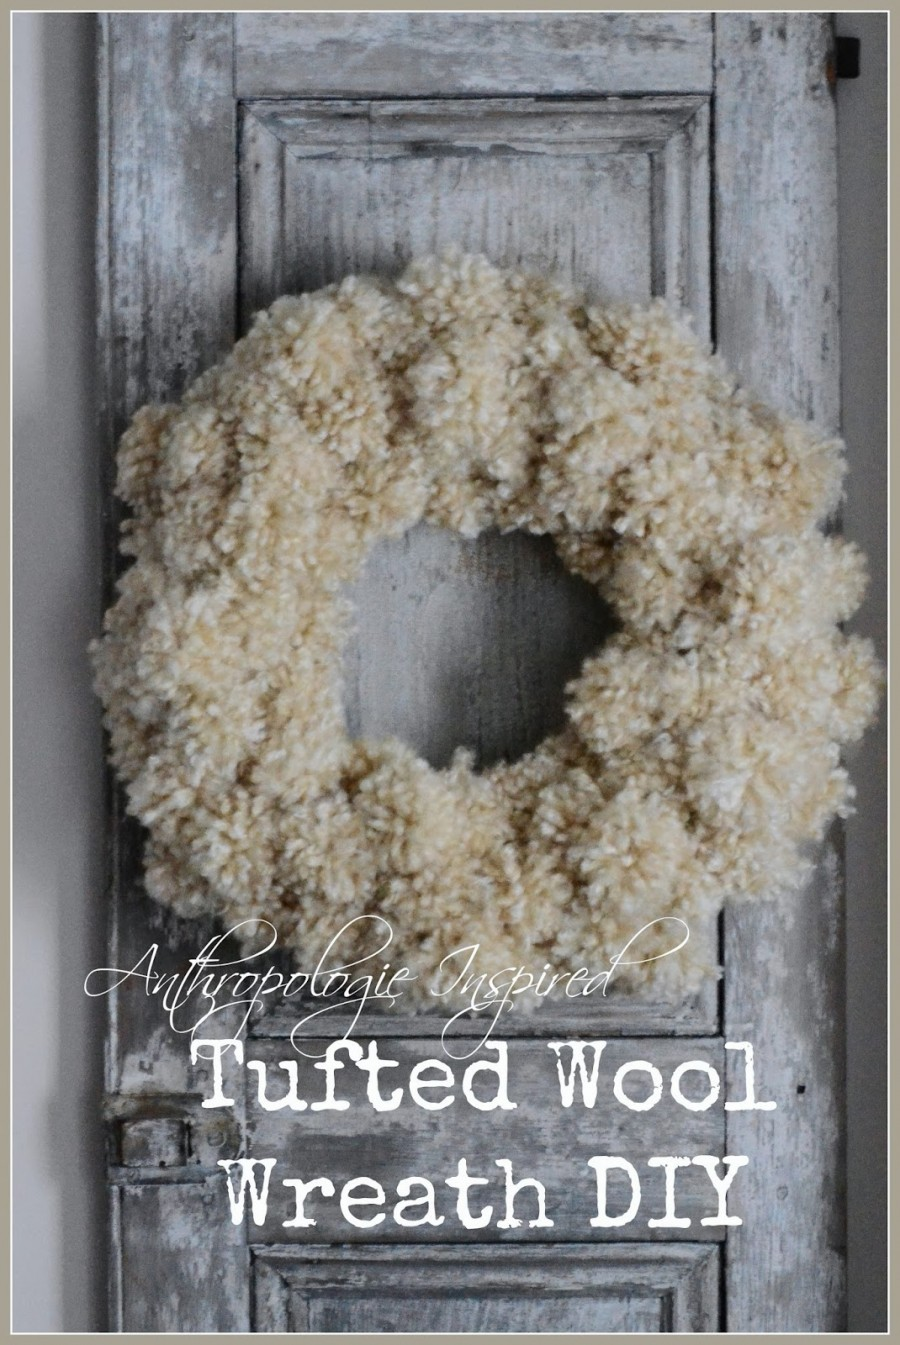 ANTHROPOLOGIE INSPIRED TUFTED WOOL WREATH DIY